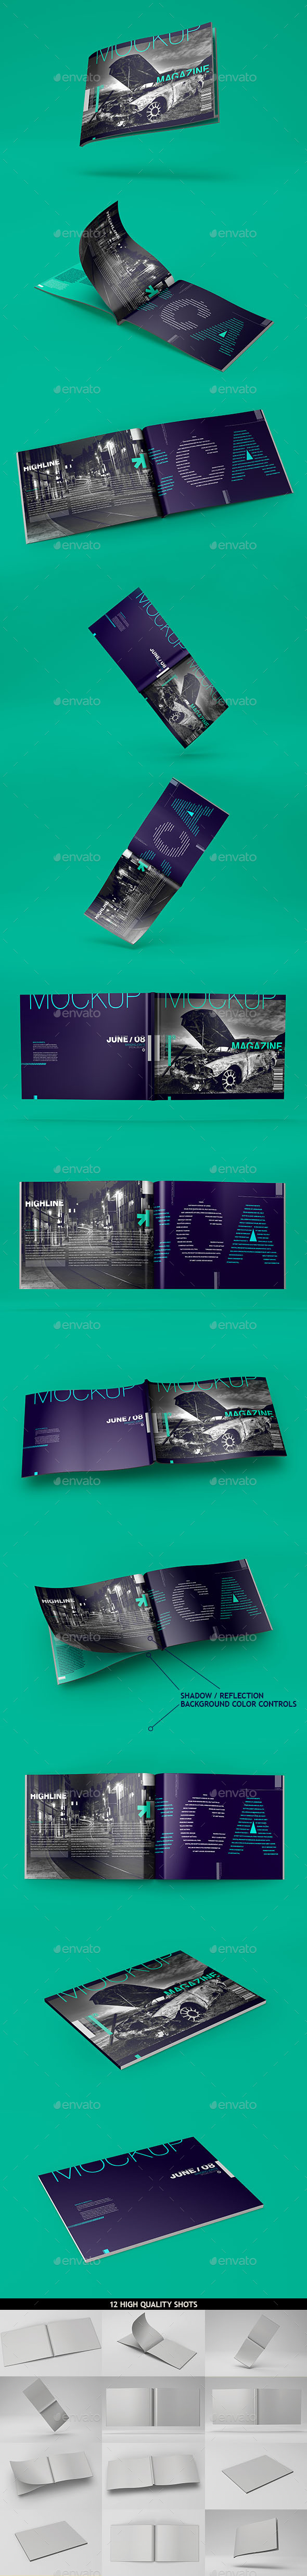 GraphicRiver Horizontal A4 Magazine Catalog Mockup 10636354